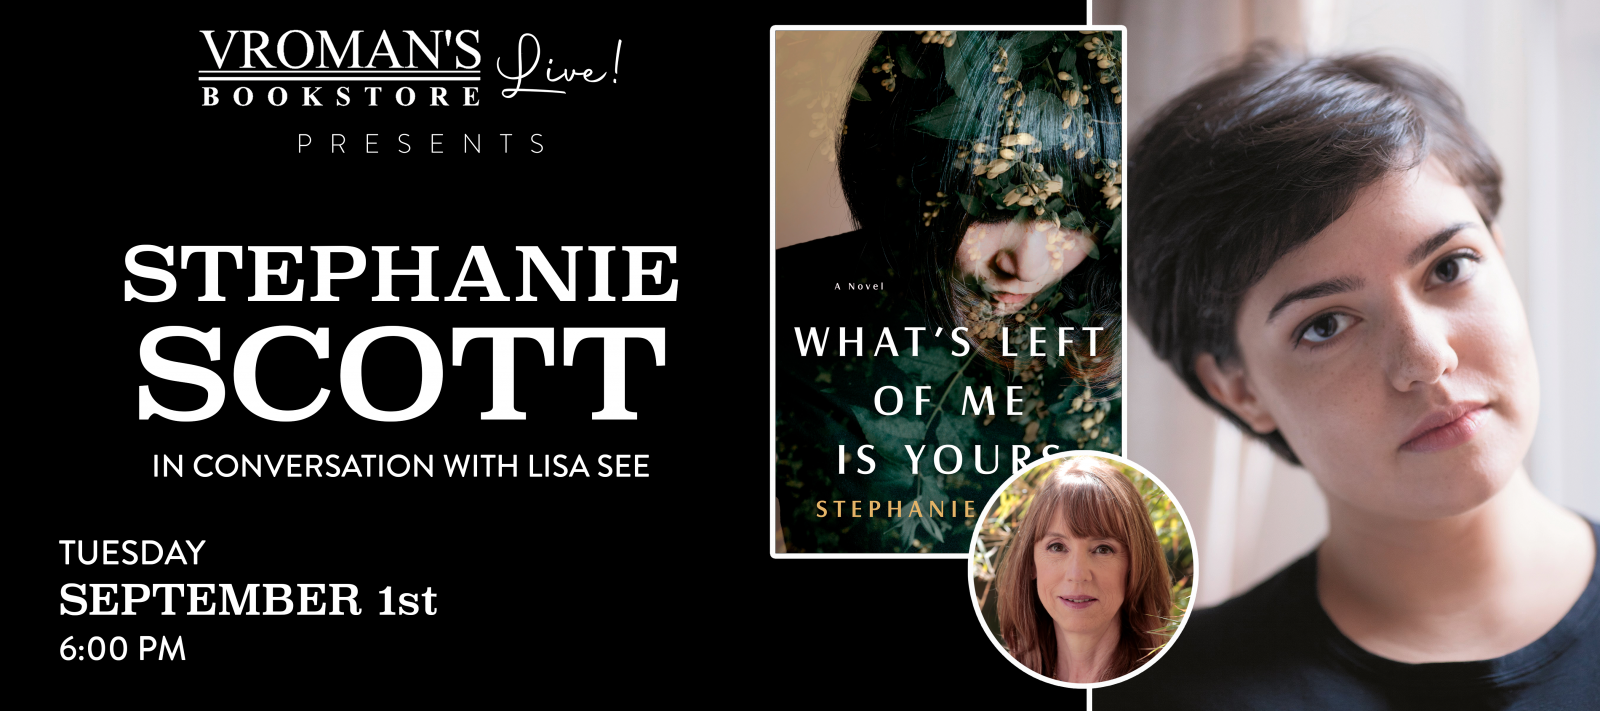 Vroman's Live presents Stephanie Scott, in conversation with Lisa See, on Tuesday September 1 at 6pm